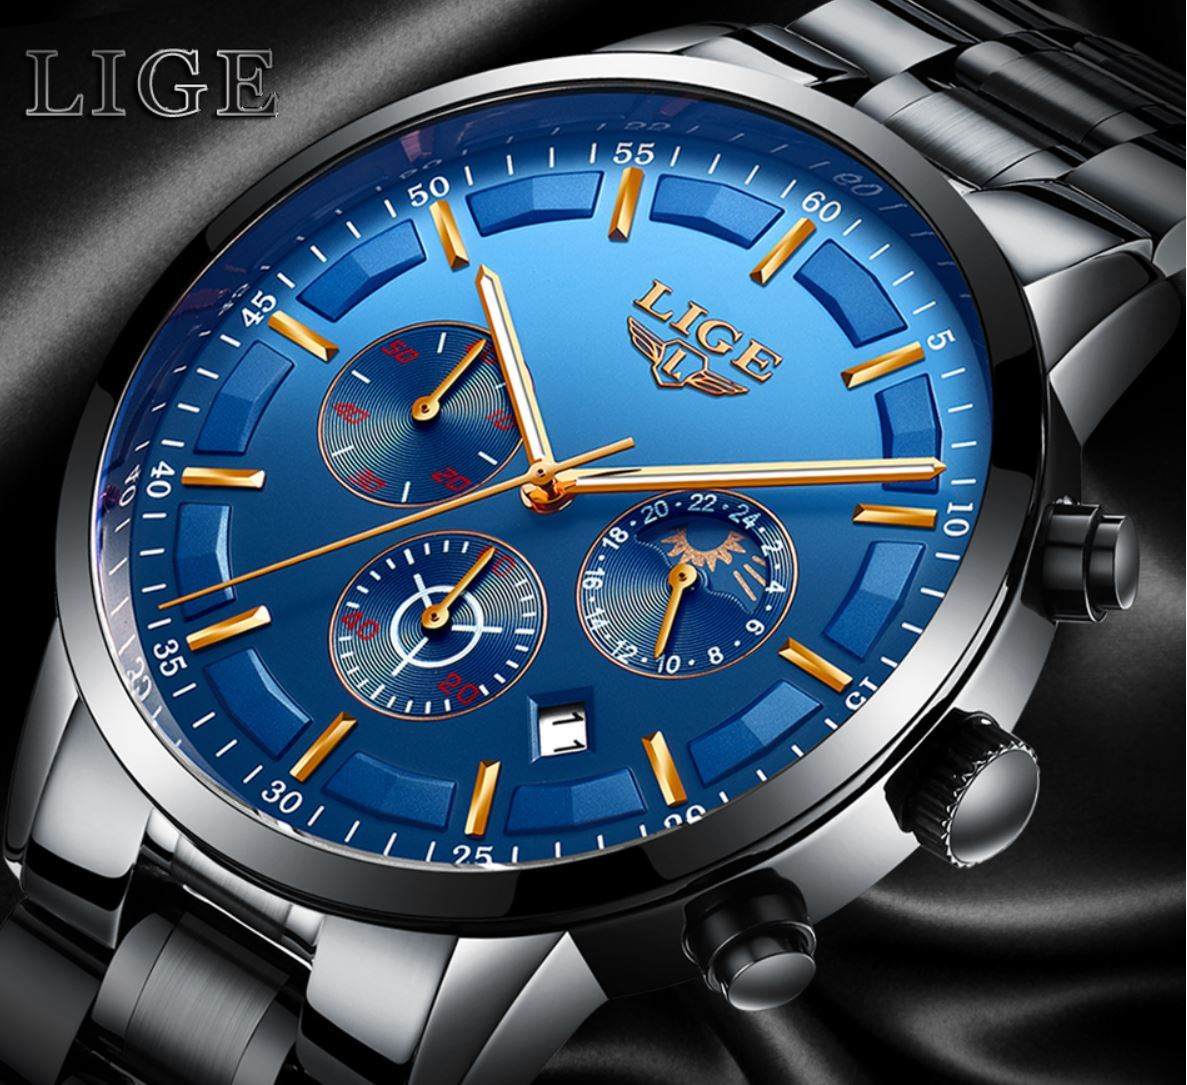 LIGE Casual Fashion All-Steel Chronograph Waterproof Watch